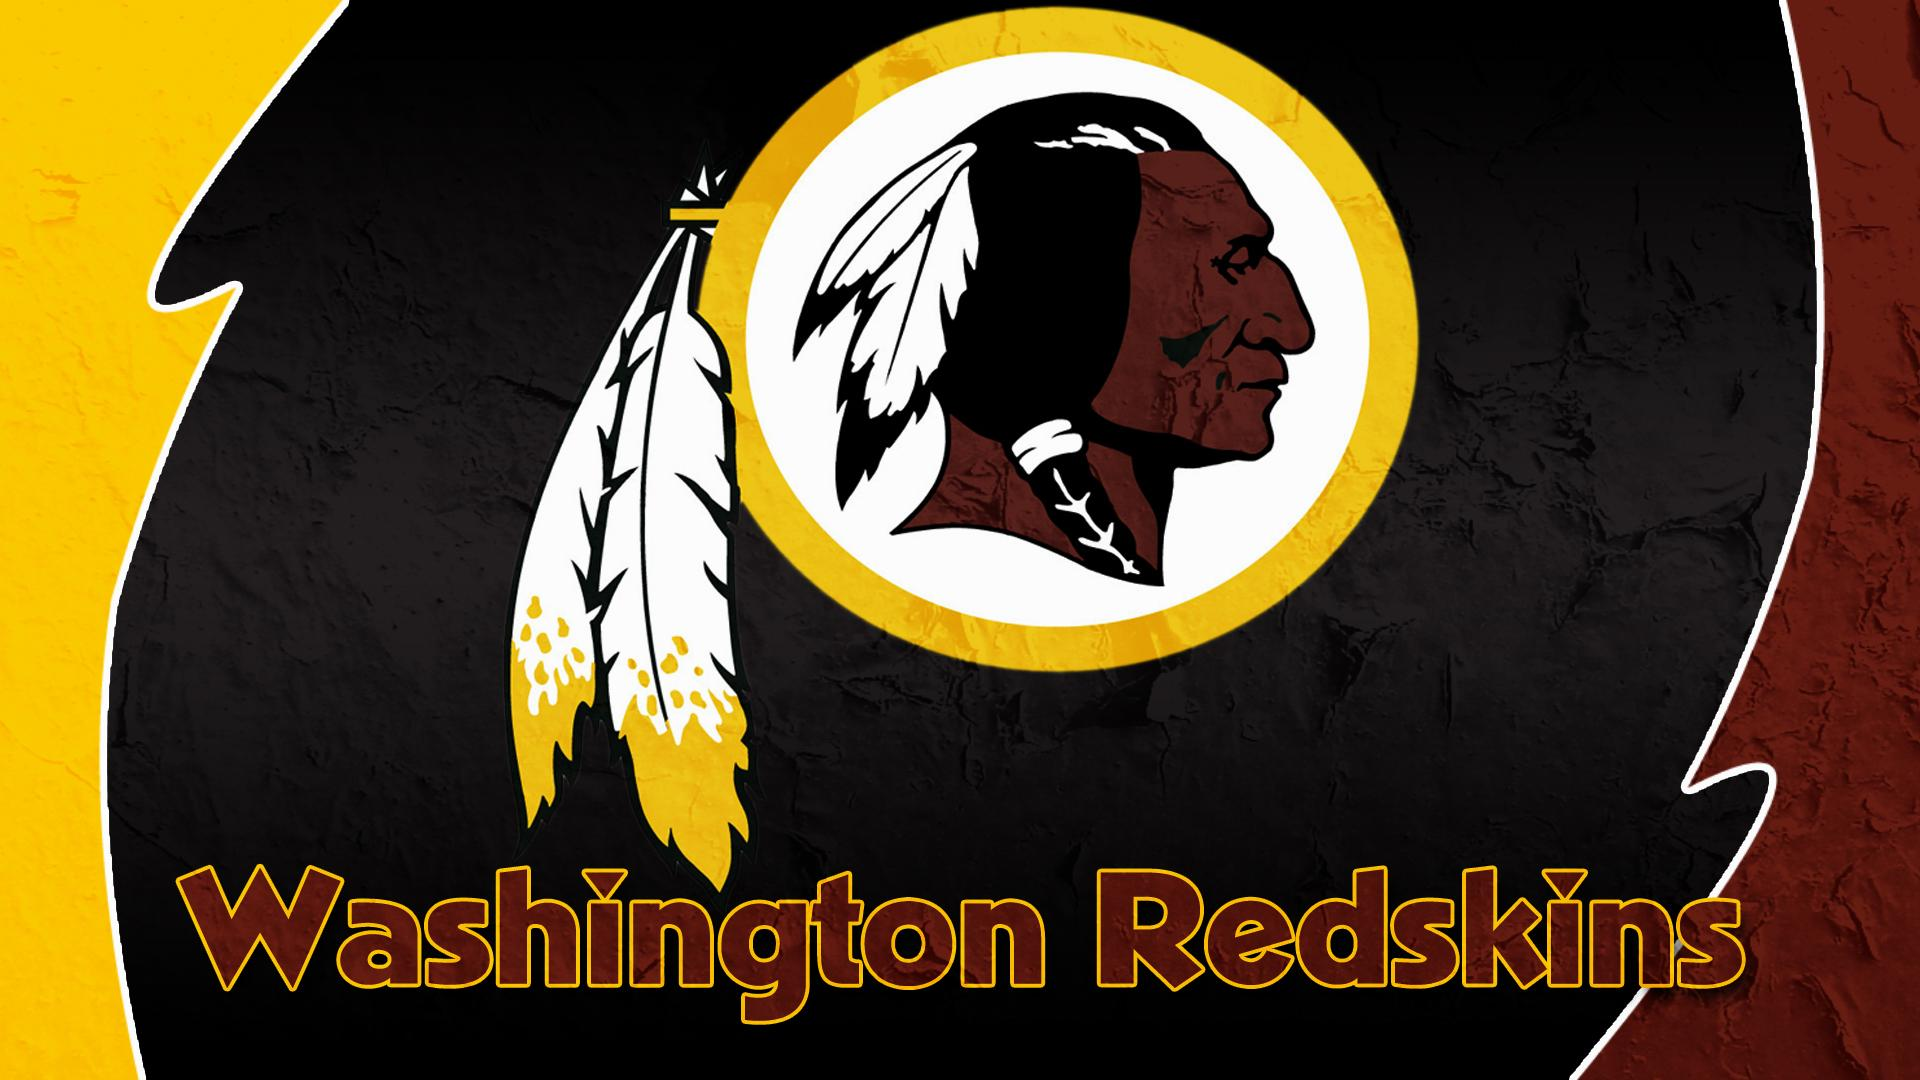 iphone-redskins-%C3%97-Redskins-Adorable-wallpaper-wpc9006622